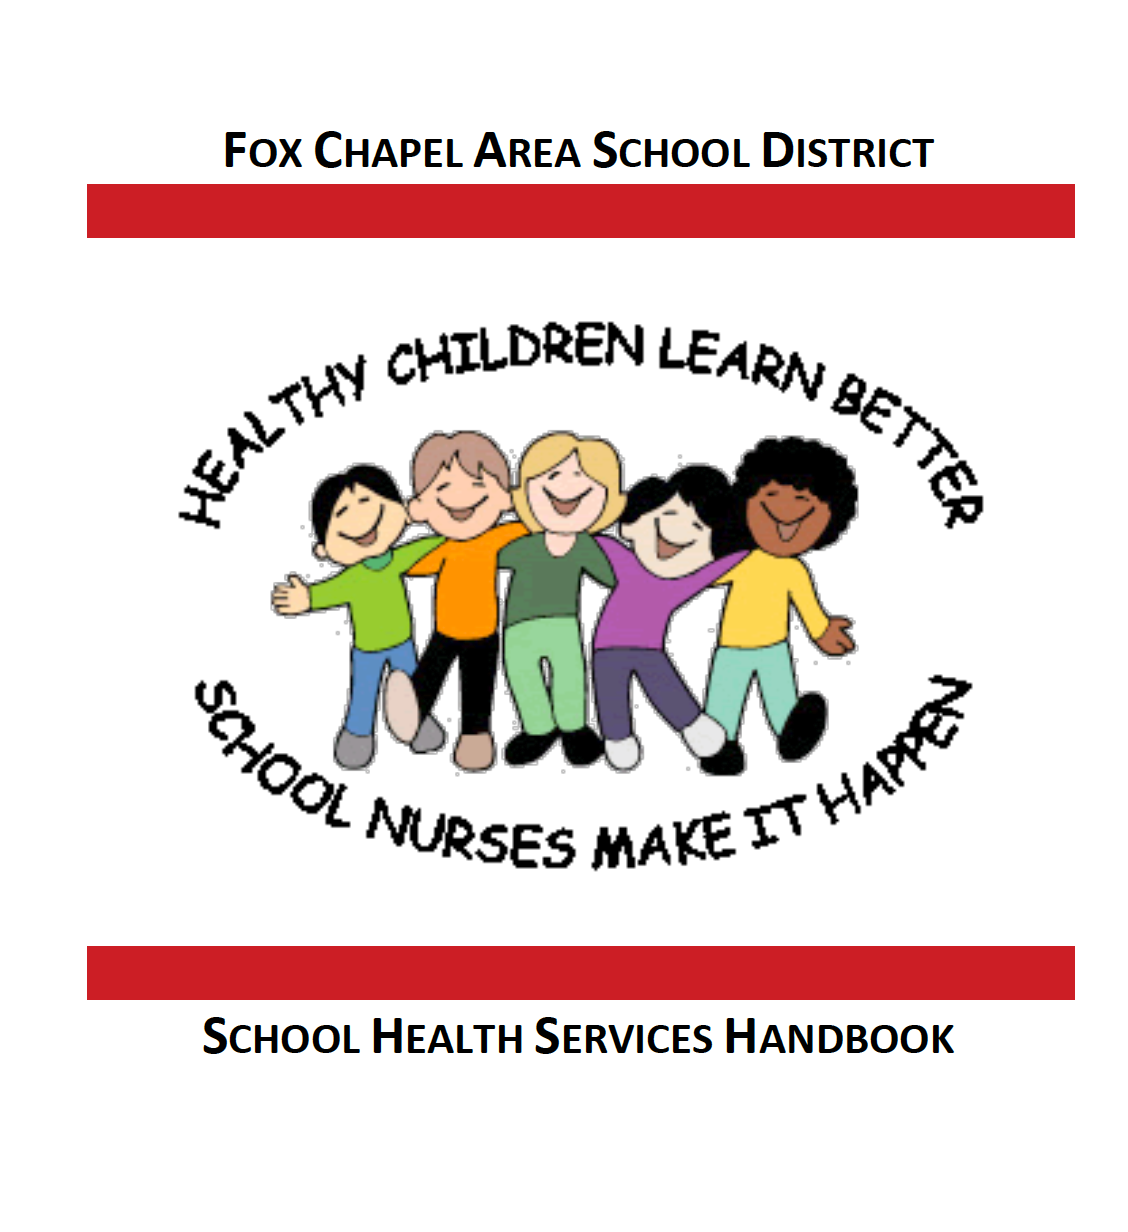 FCASD School Health Services Handbook